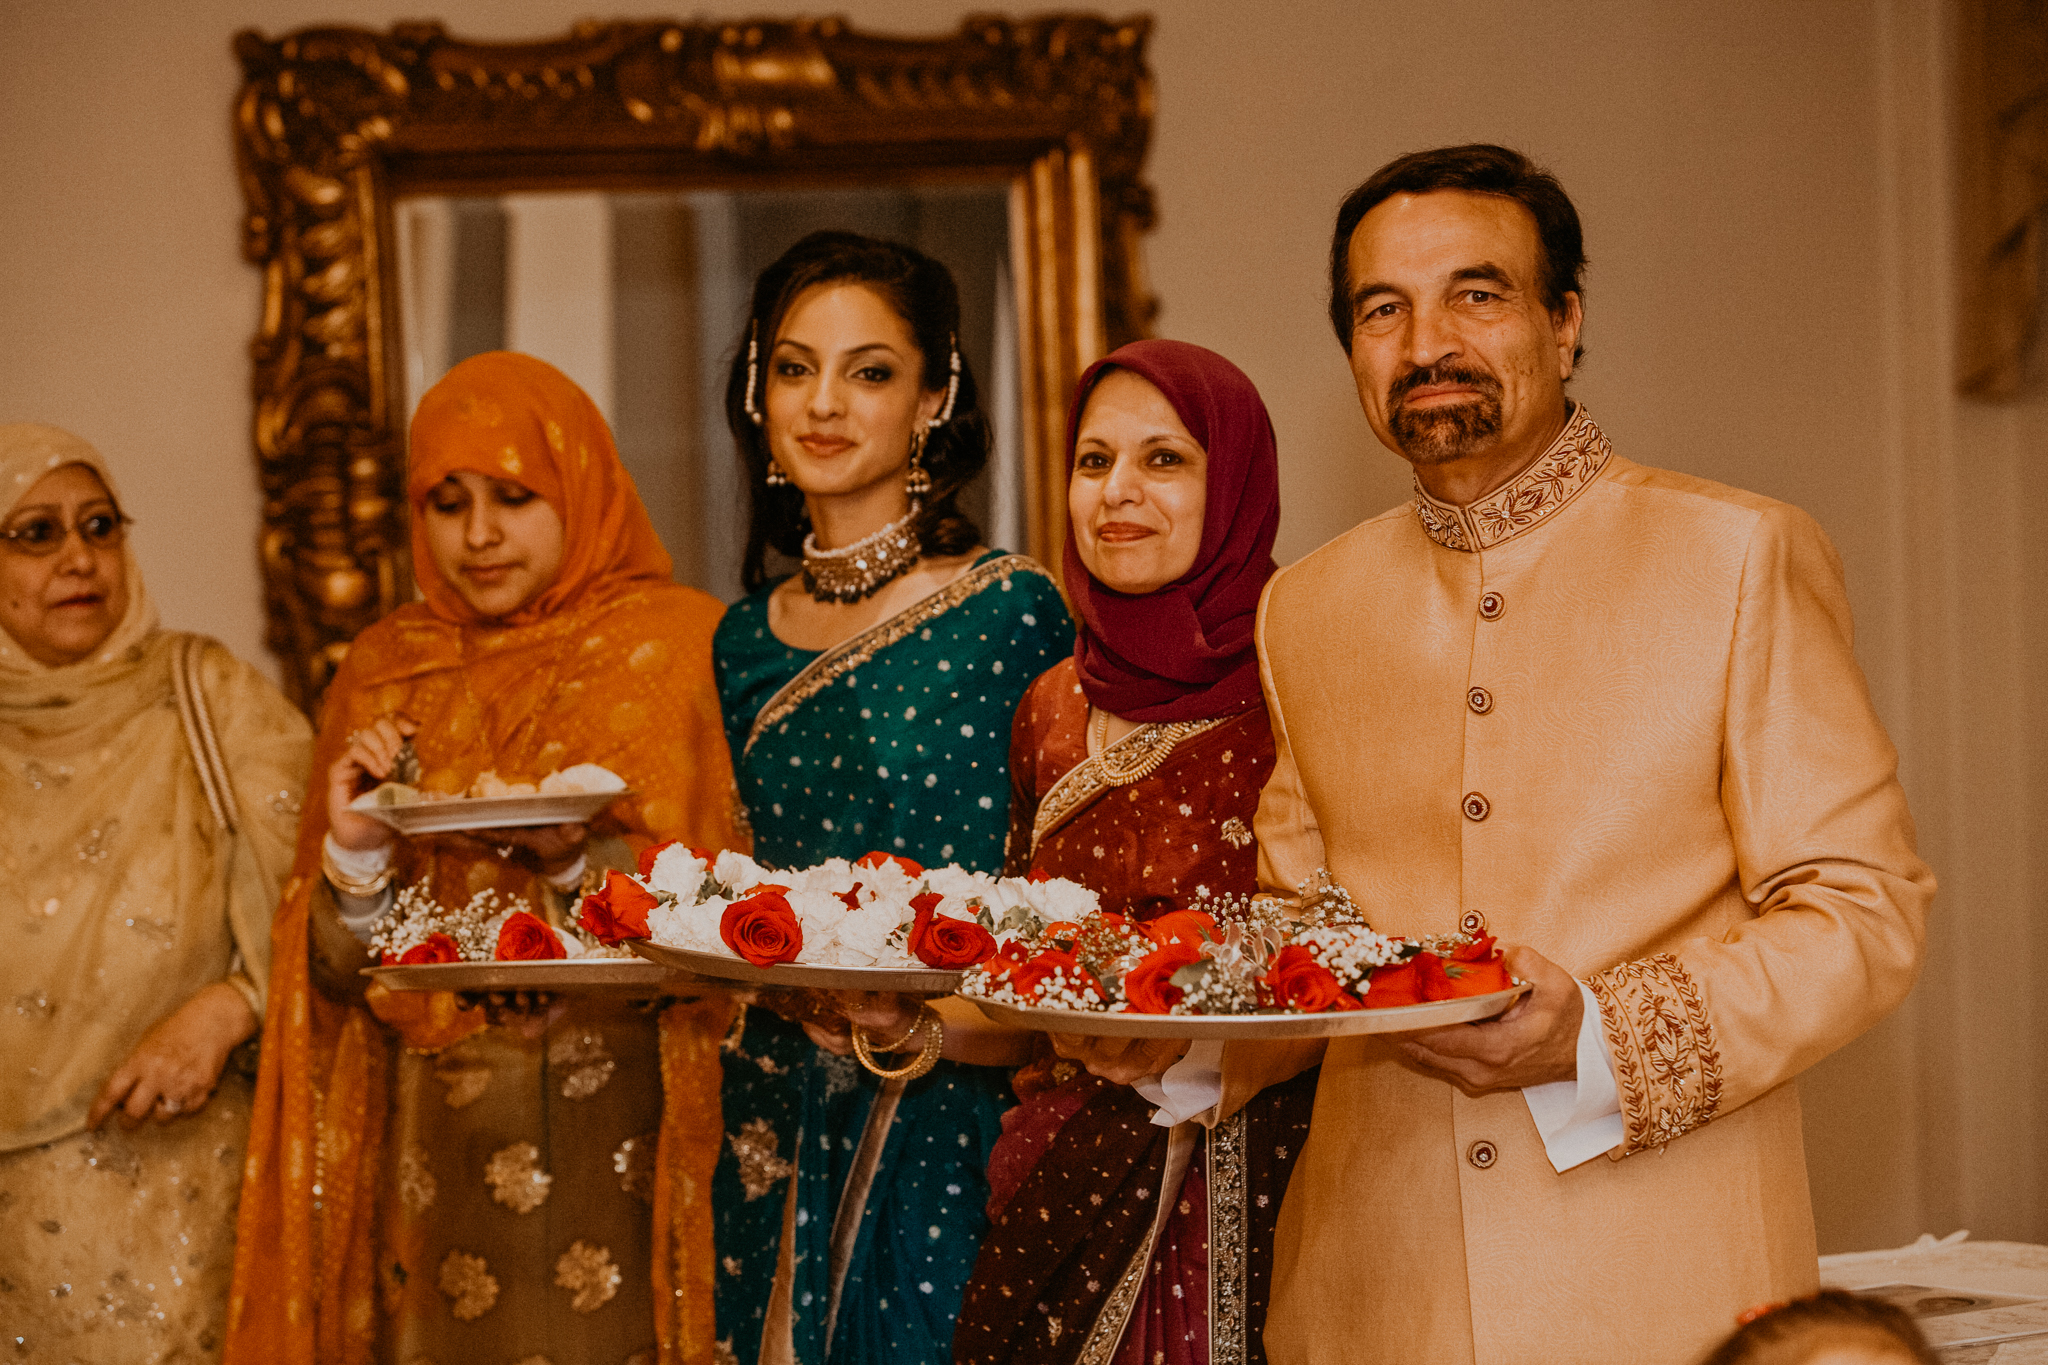 Family of bride wait to greet groom at Indian wedding